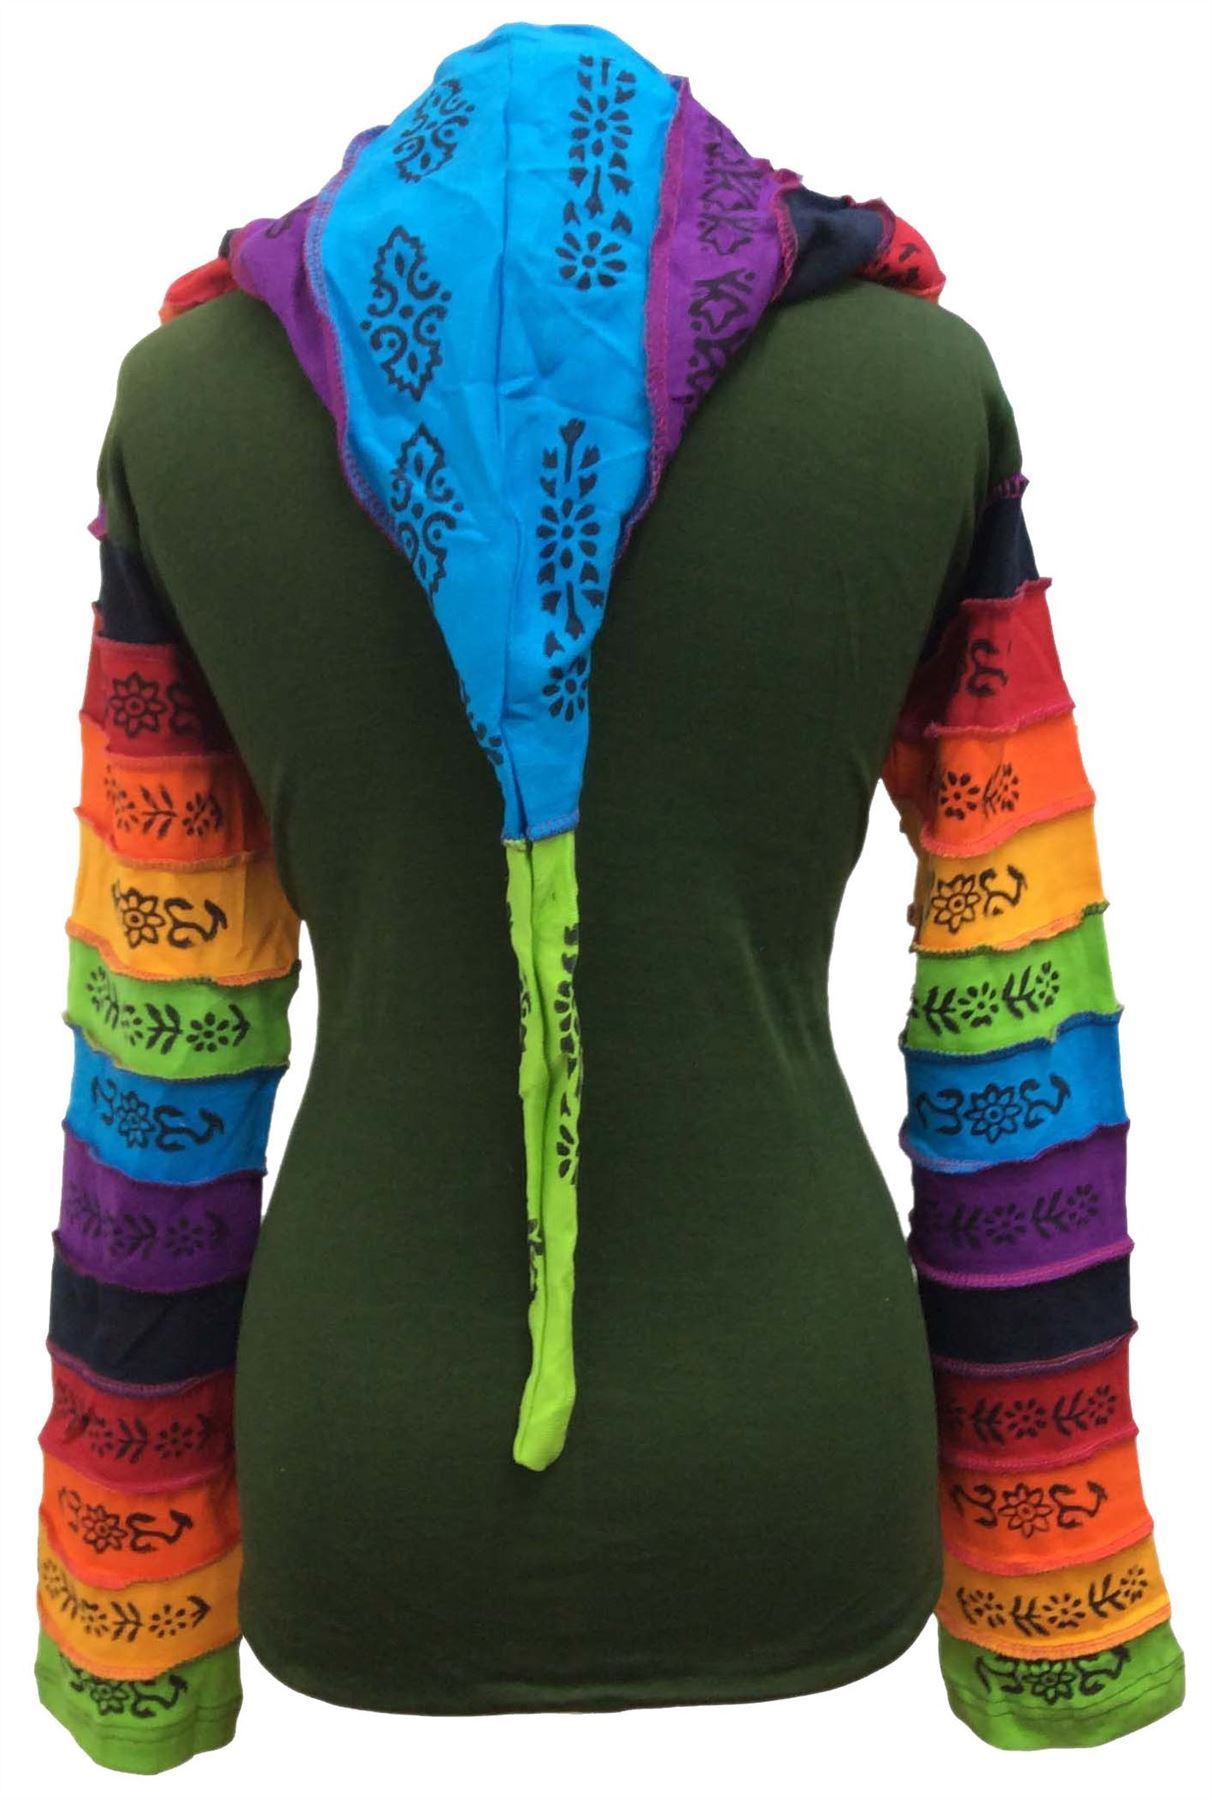 Women-Rainbow-Sleeved-Flower-Patch-Hoodie-Hippy-Light-Weight-Jacket thumbnail 6